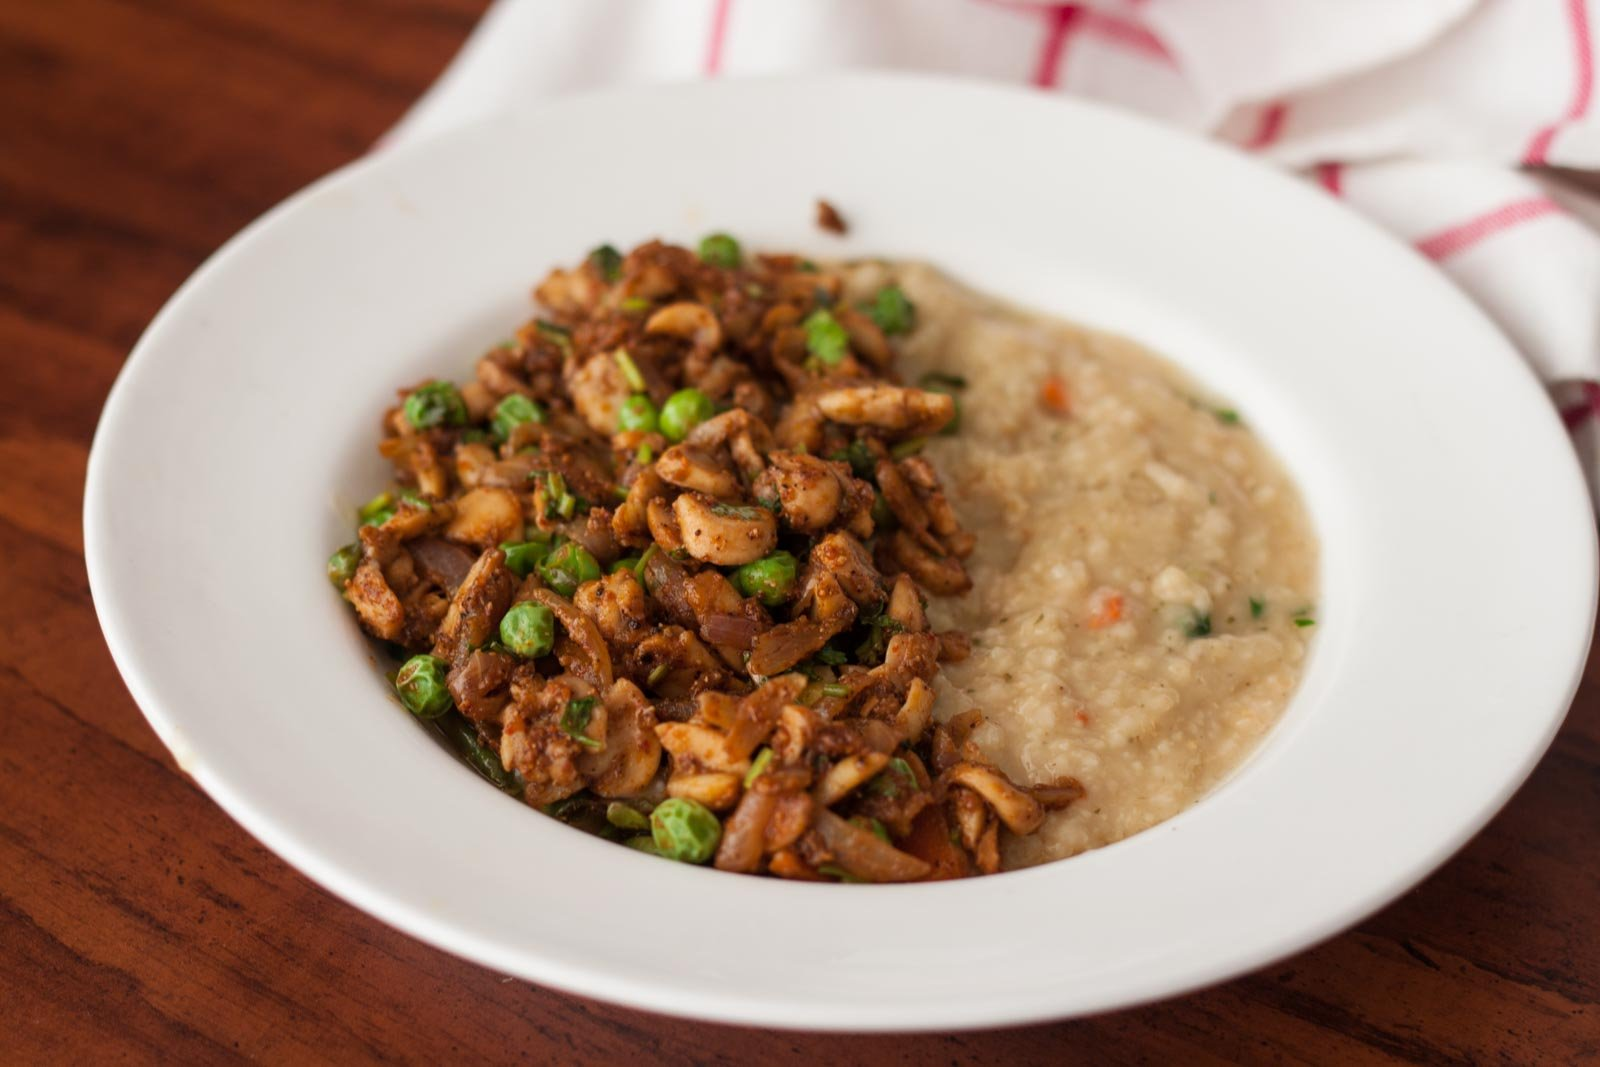 Savory Oatmeal Bowl with Chettinad Mushroom and Green Peas Stir Fry Recipe